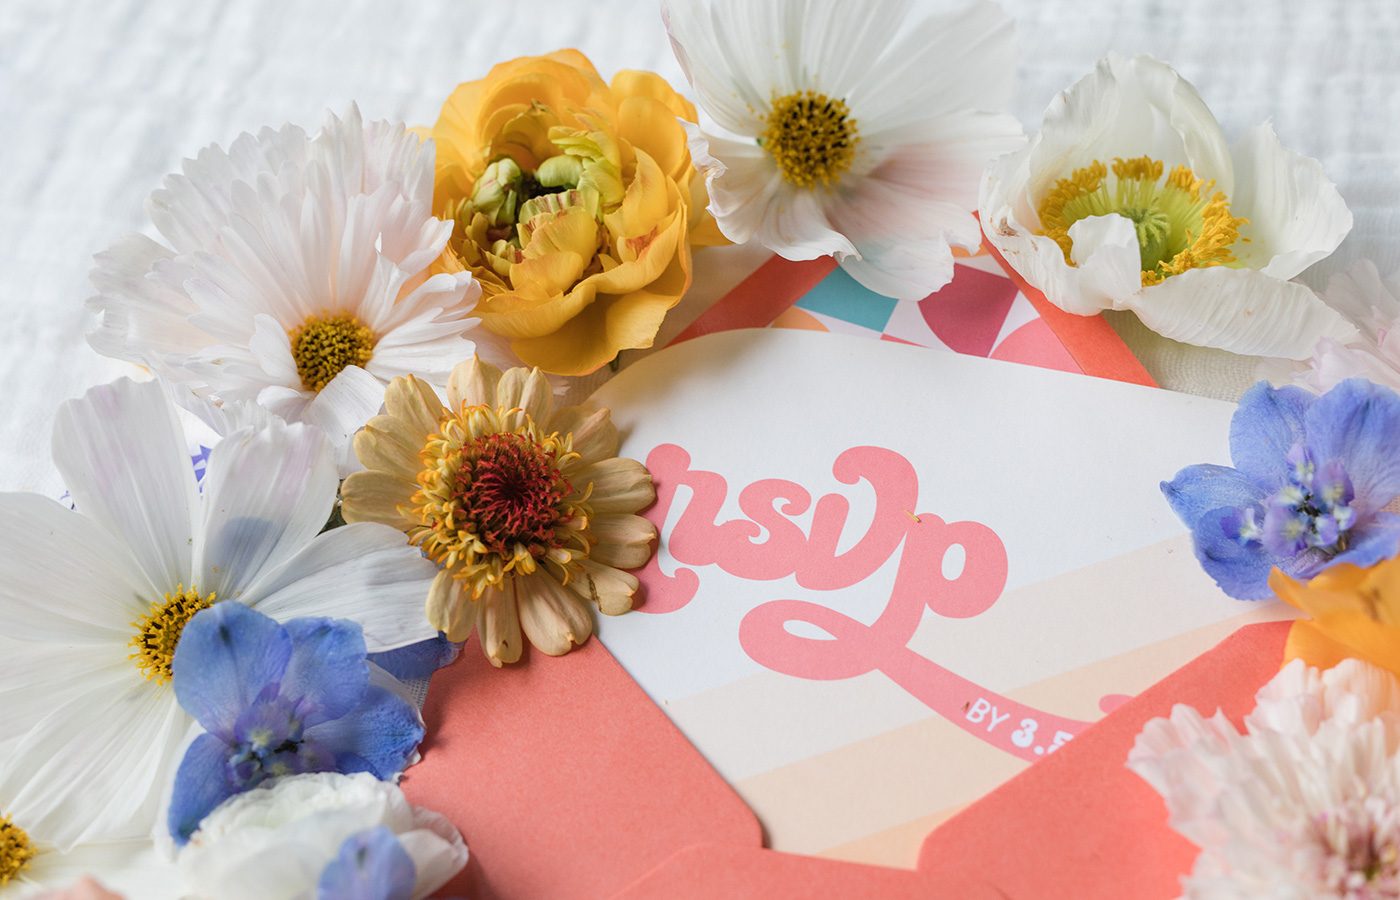 Revolution-Paper-Co-Luxury-Wedding-Stationery-Groovin-Love-Collection-rsvp-photo-by-Lilac-and-Lemon-Photography